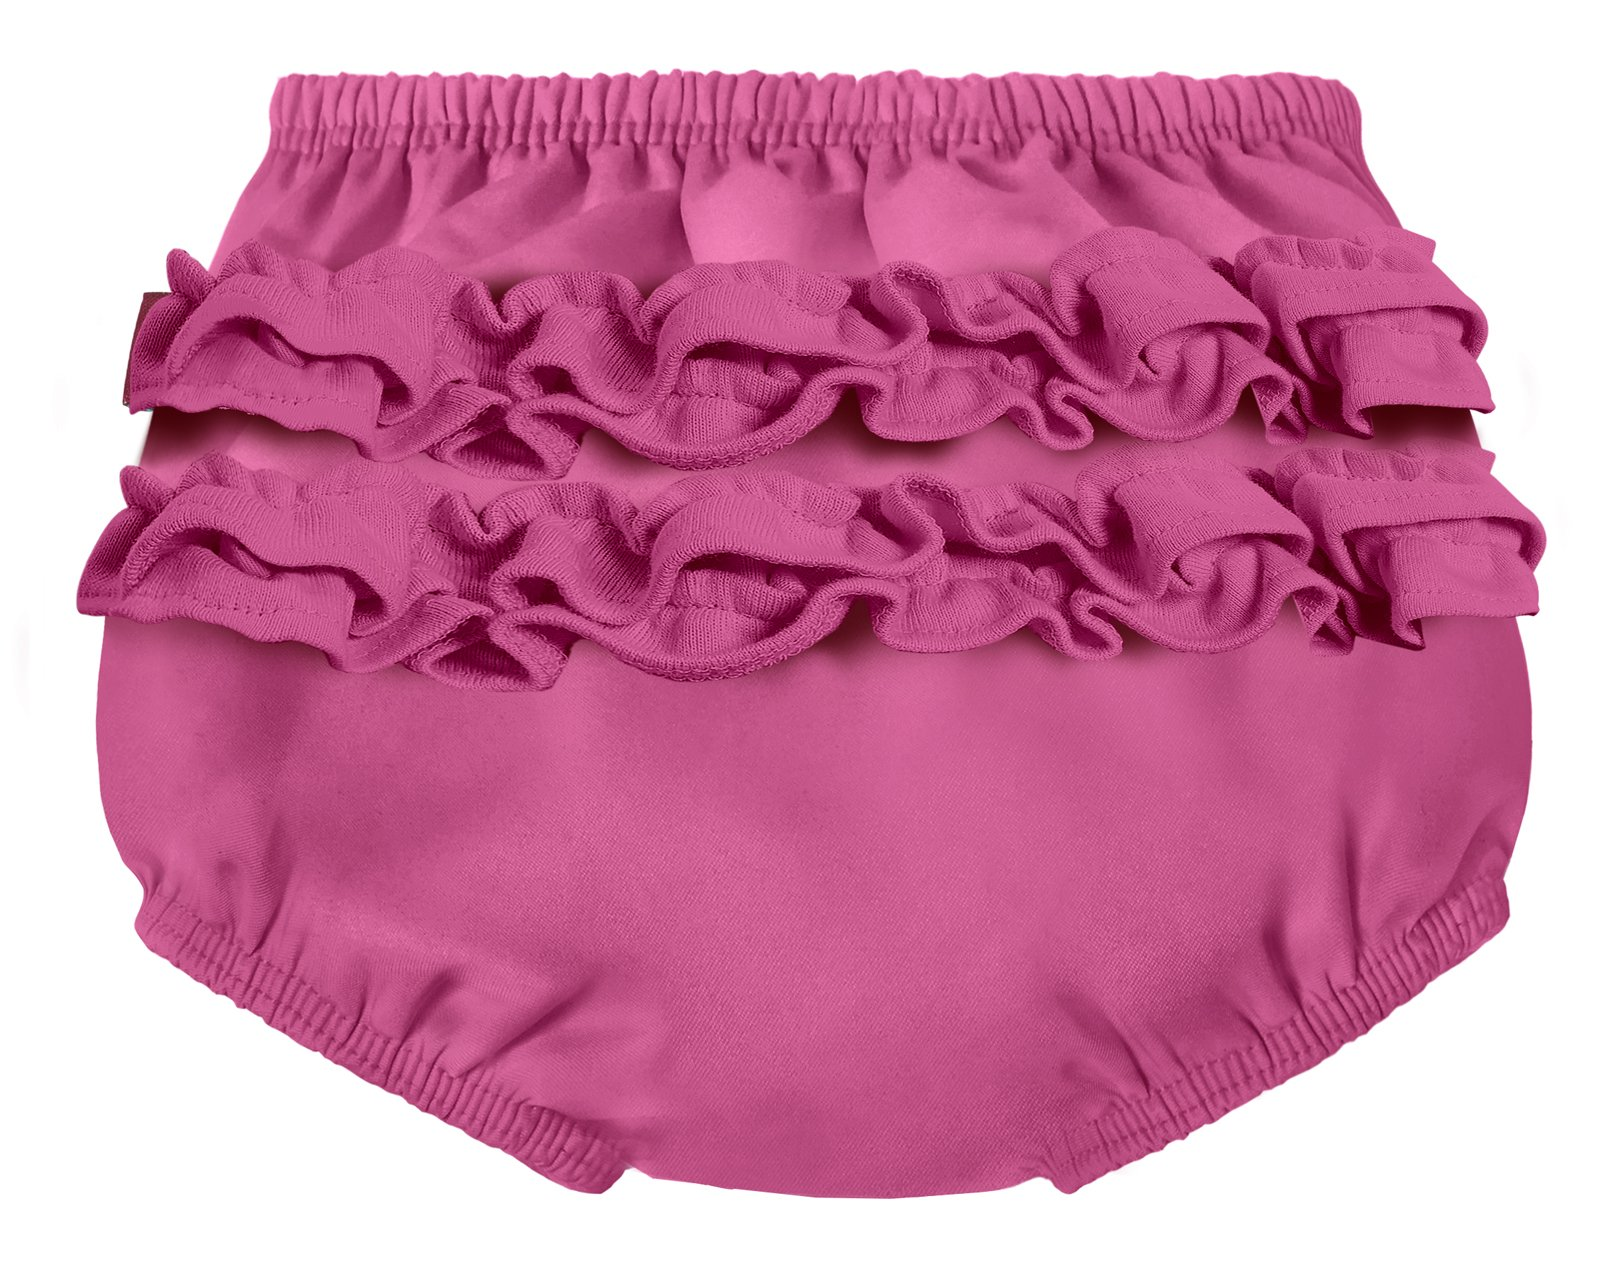 City Threads Baby Girls' Ruffle Swim Diaper Cover Reusable Leakproof for Swimming Pool Lessons Beach, Plum, 3T